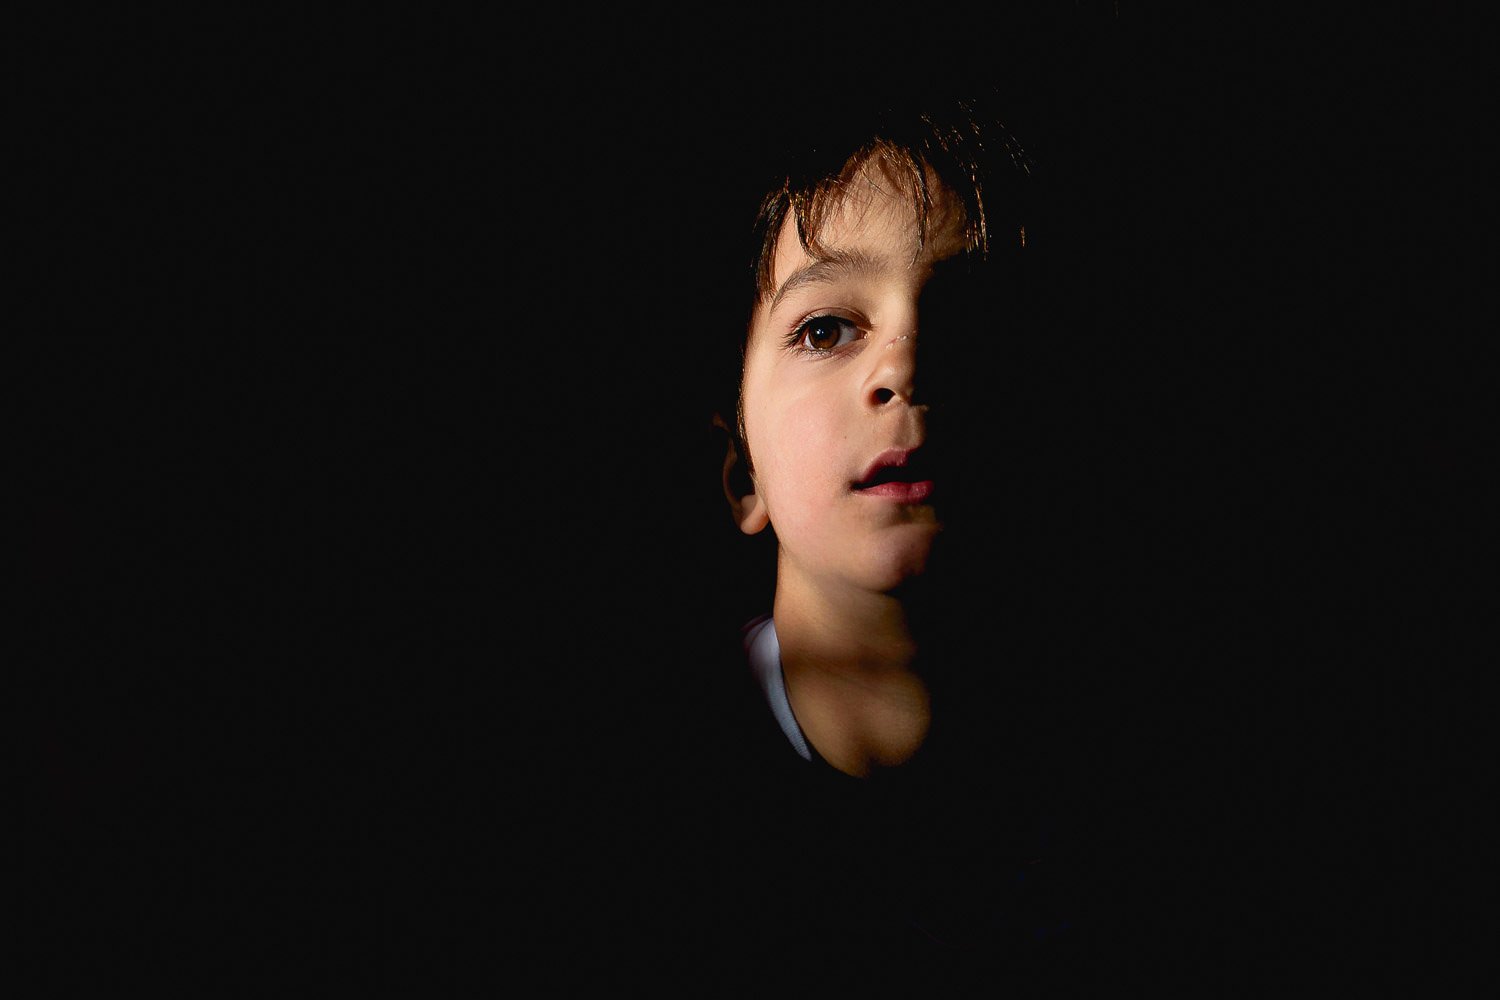 Boy sat in darkness with half his face in patch of light